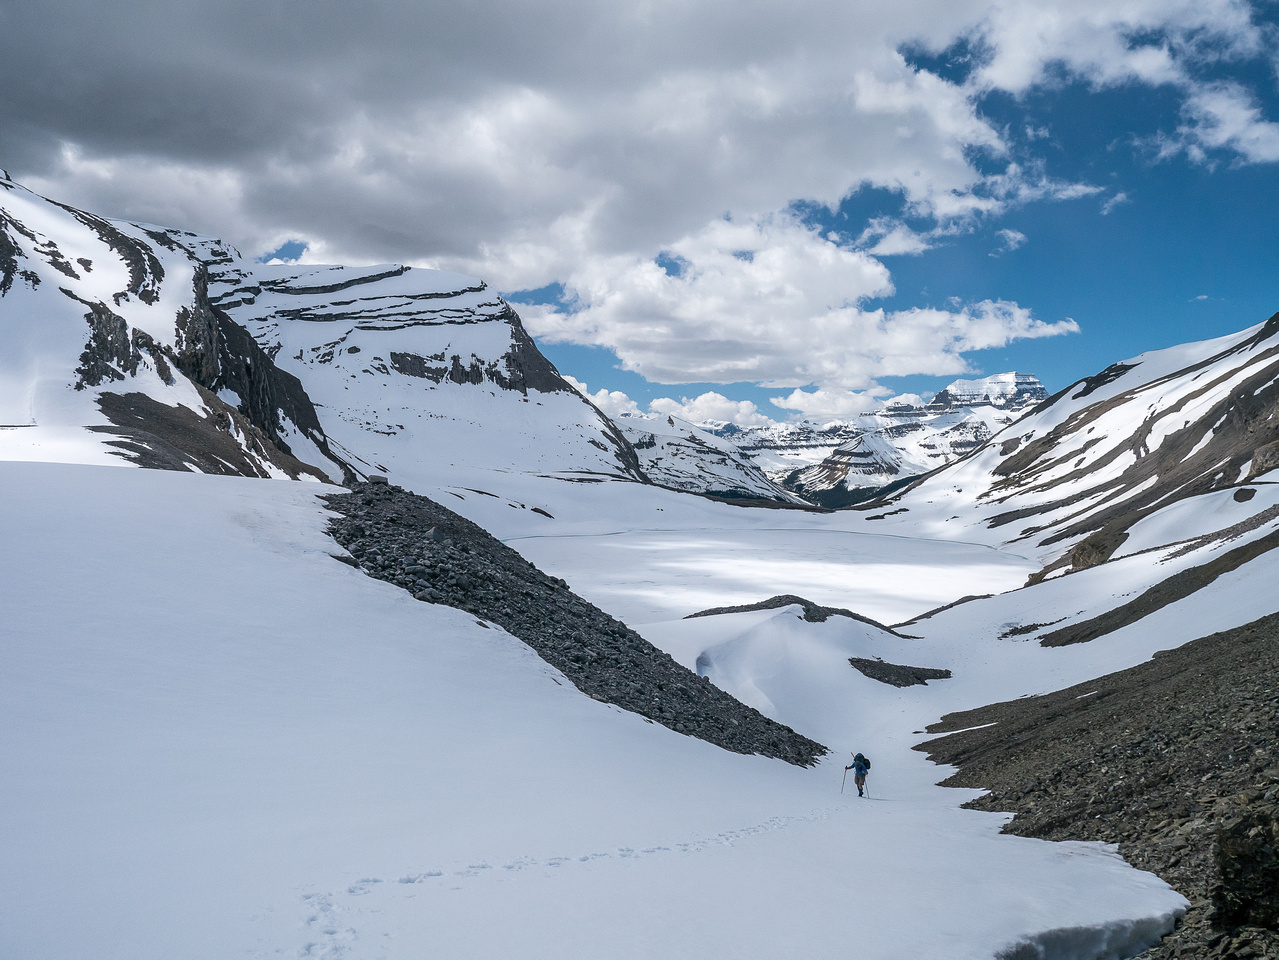 Heading up a snow gully to the pass.